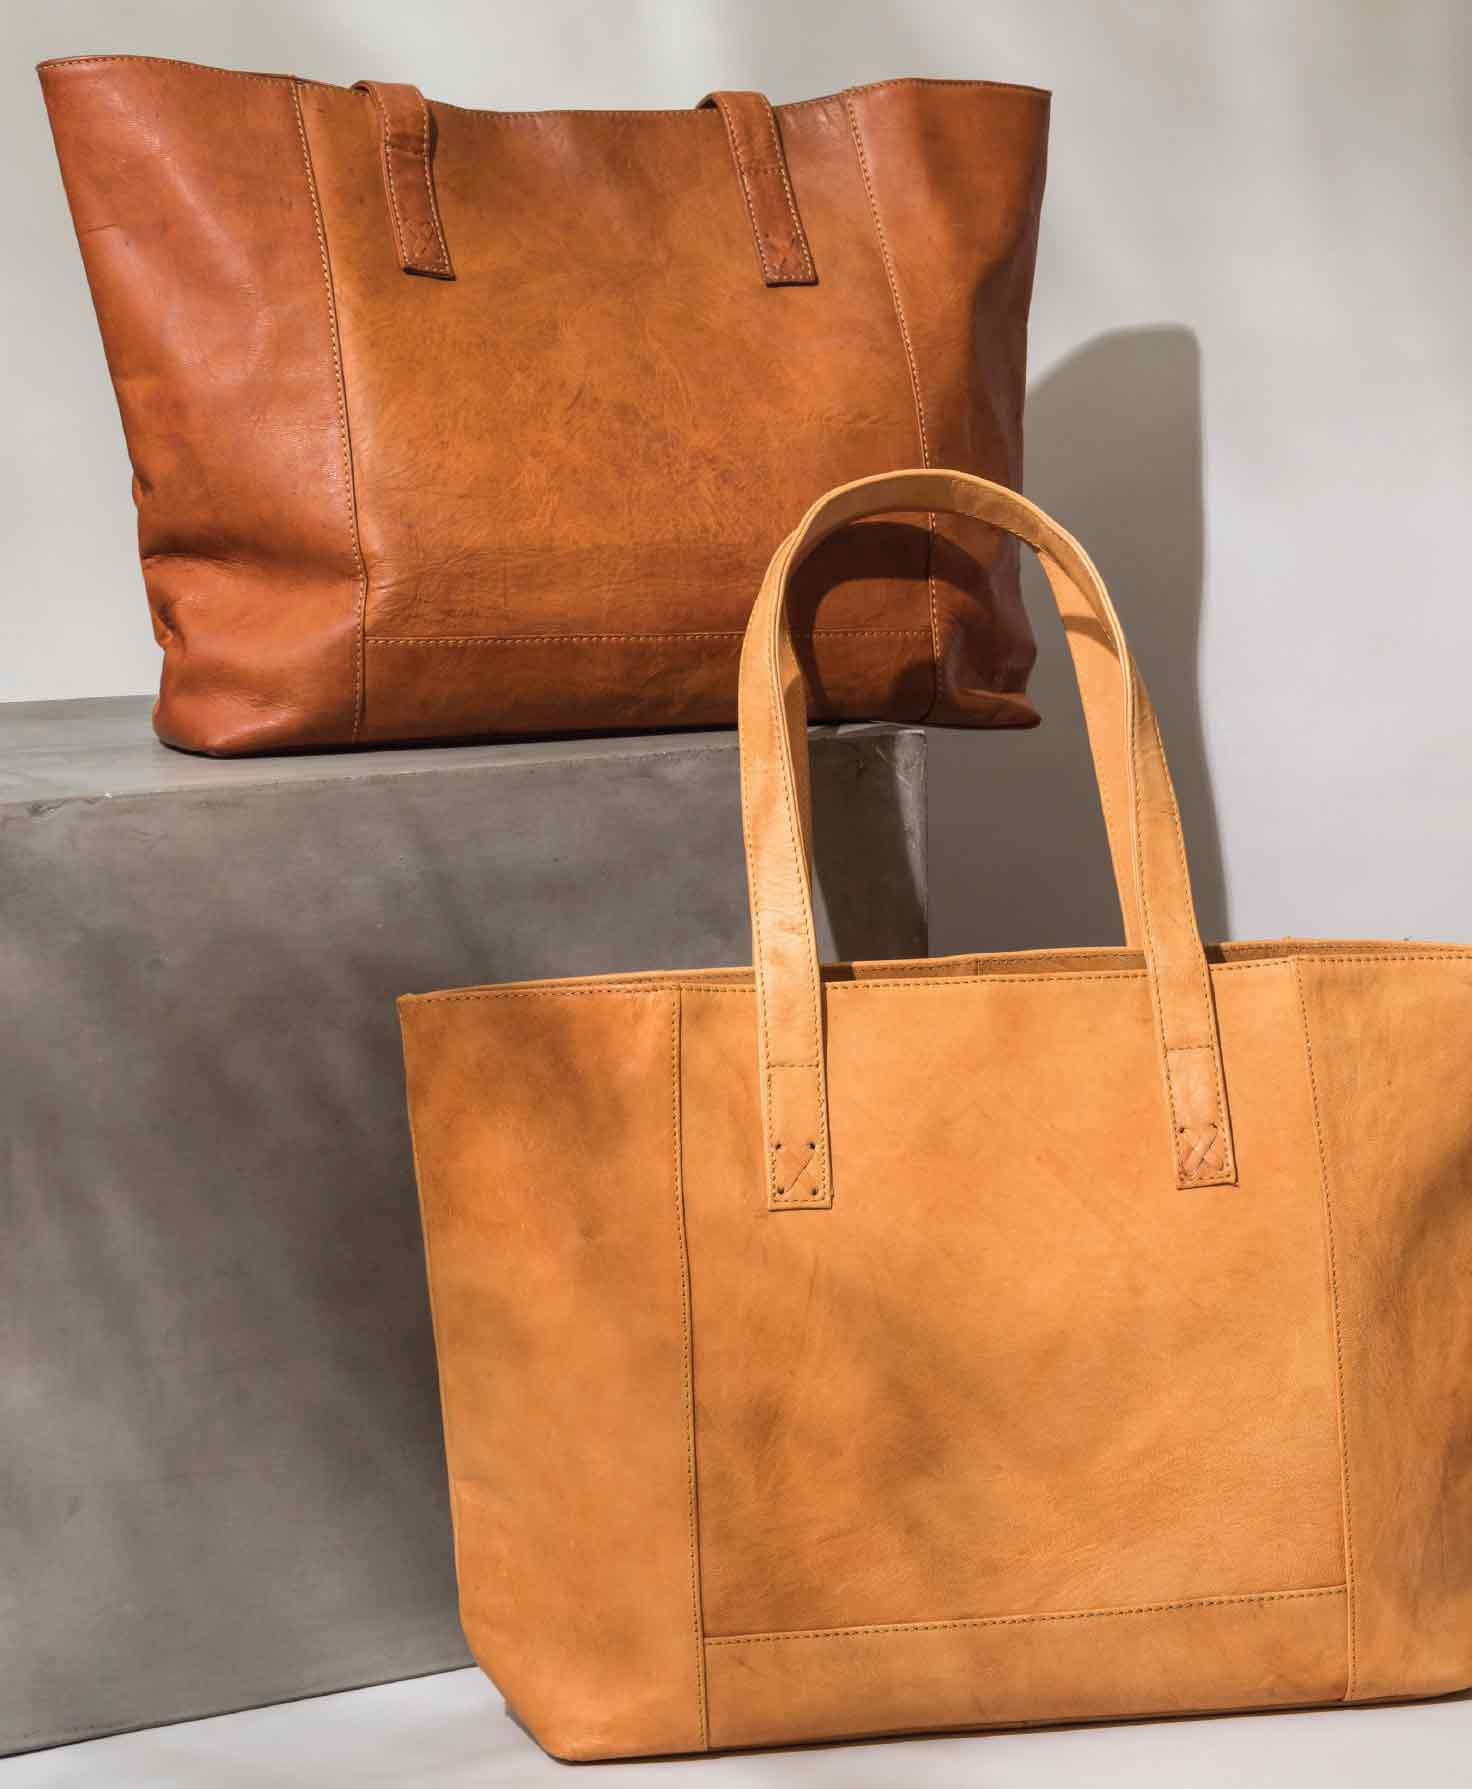 The Modern Leather Tote hangs against a white wall. It is a rectangular tote that is wider than it is high. The is a rectangular panel, allowing the bag to sit flat on its bottom. It is made of smooth, glossy, caramel-colored leather. There are some subtle natural markings and variations within the leather. The tote has a minimal design with no exterior pockets. There are two leather handles attached to the top of the bag, stitched onto the body of the bag with a small leather X.